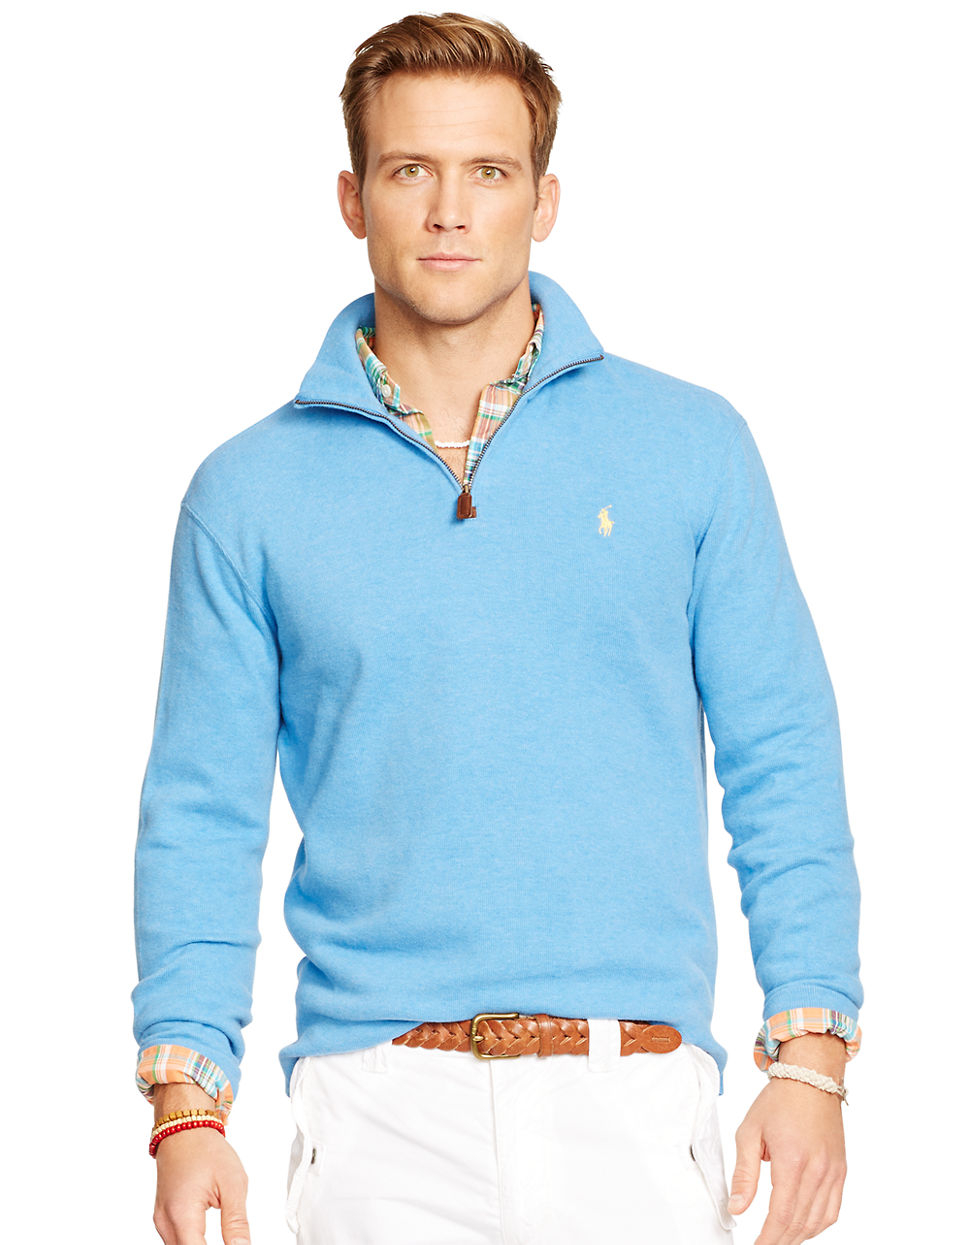 An image relevant to this listing. NEW RALPH LAUREN 1/2 ZIP TOP